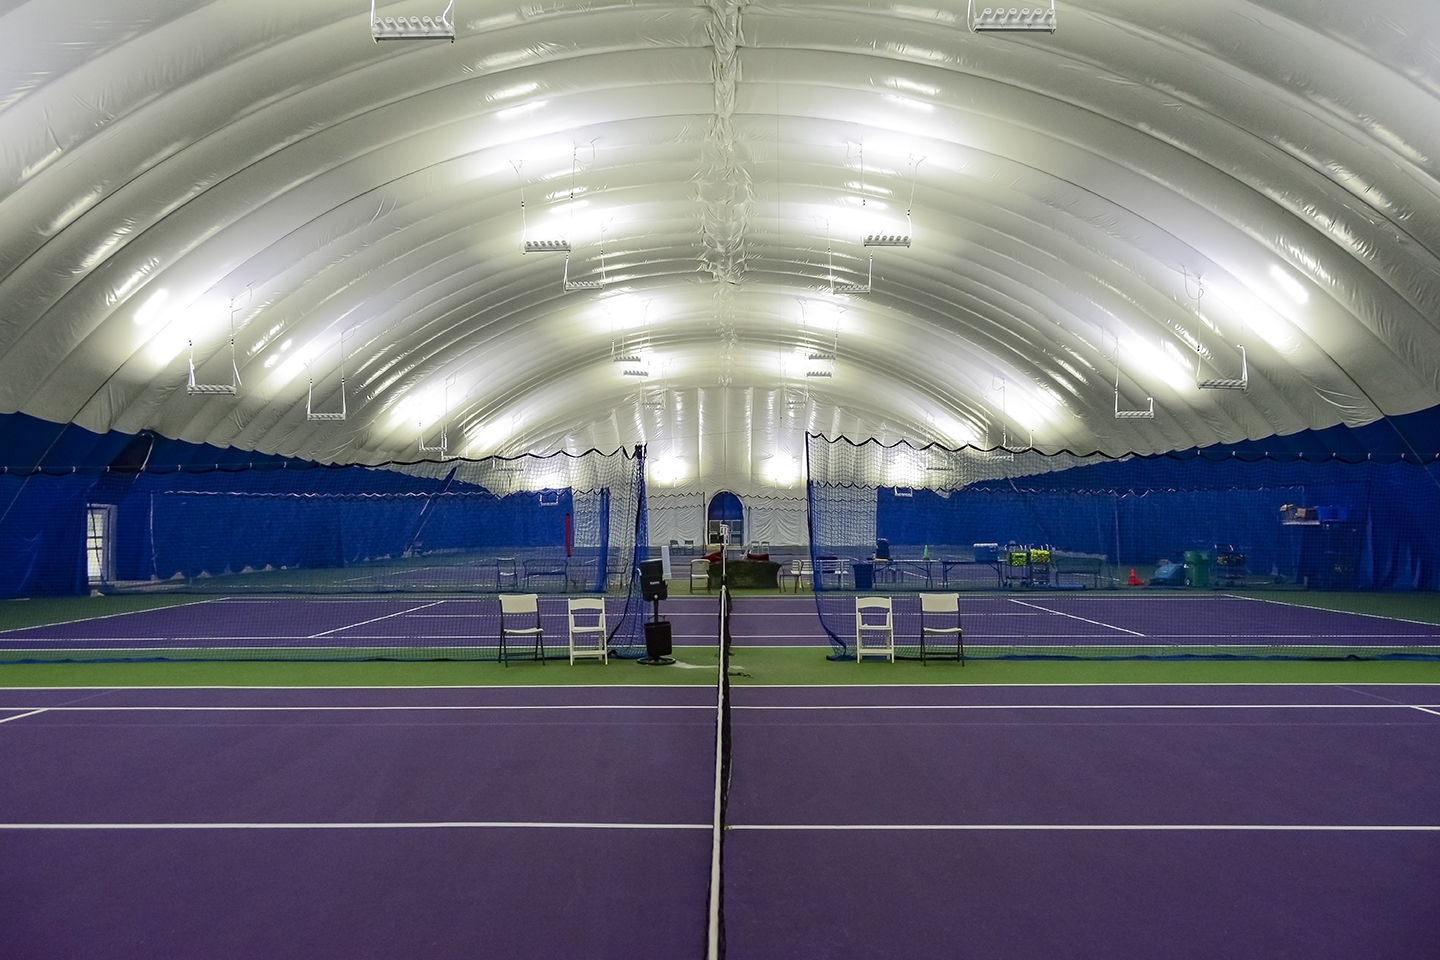 Inside the Tennis Bubble